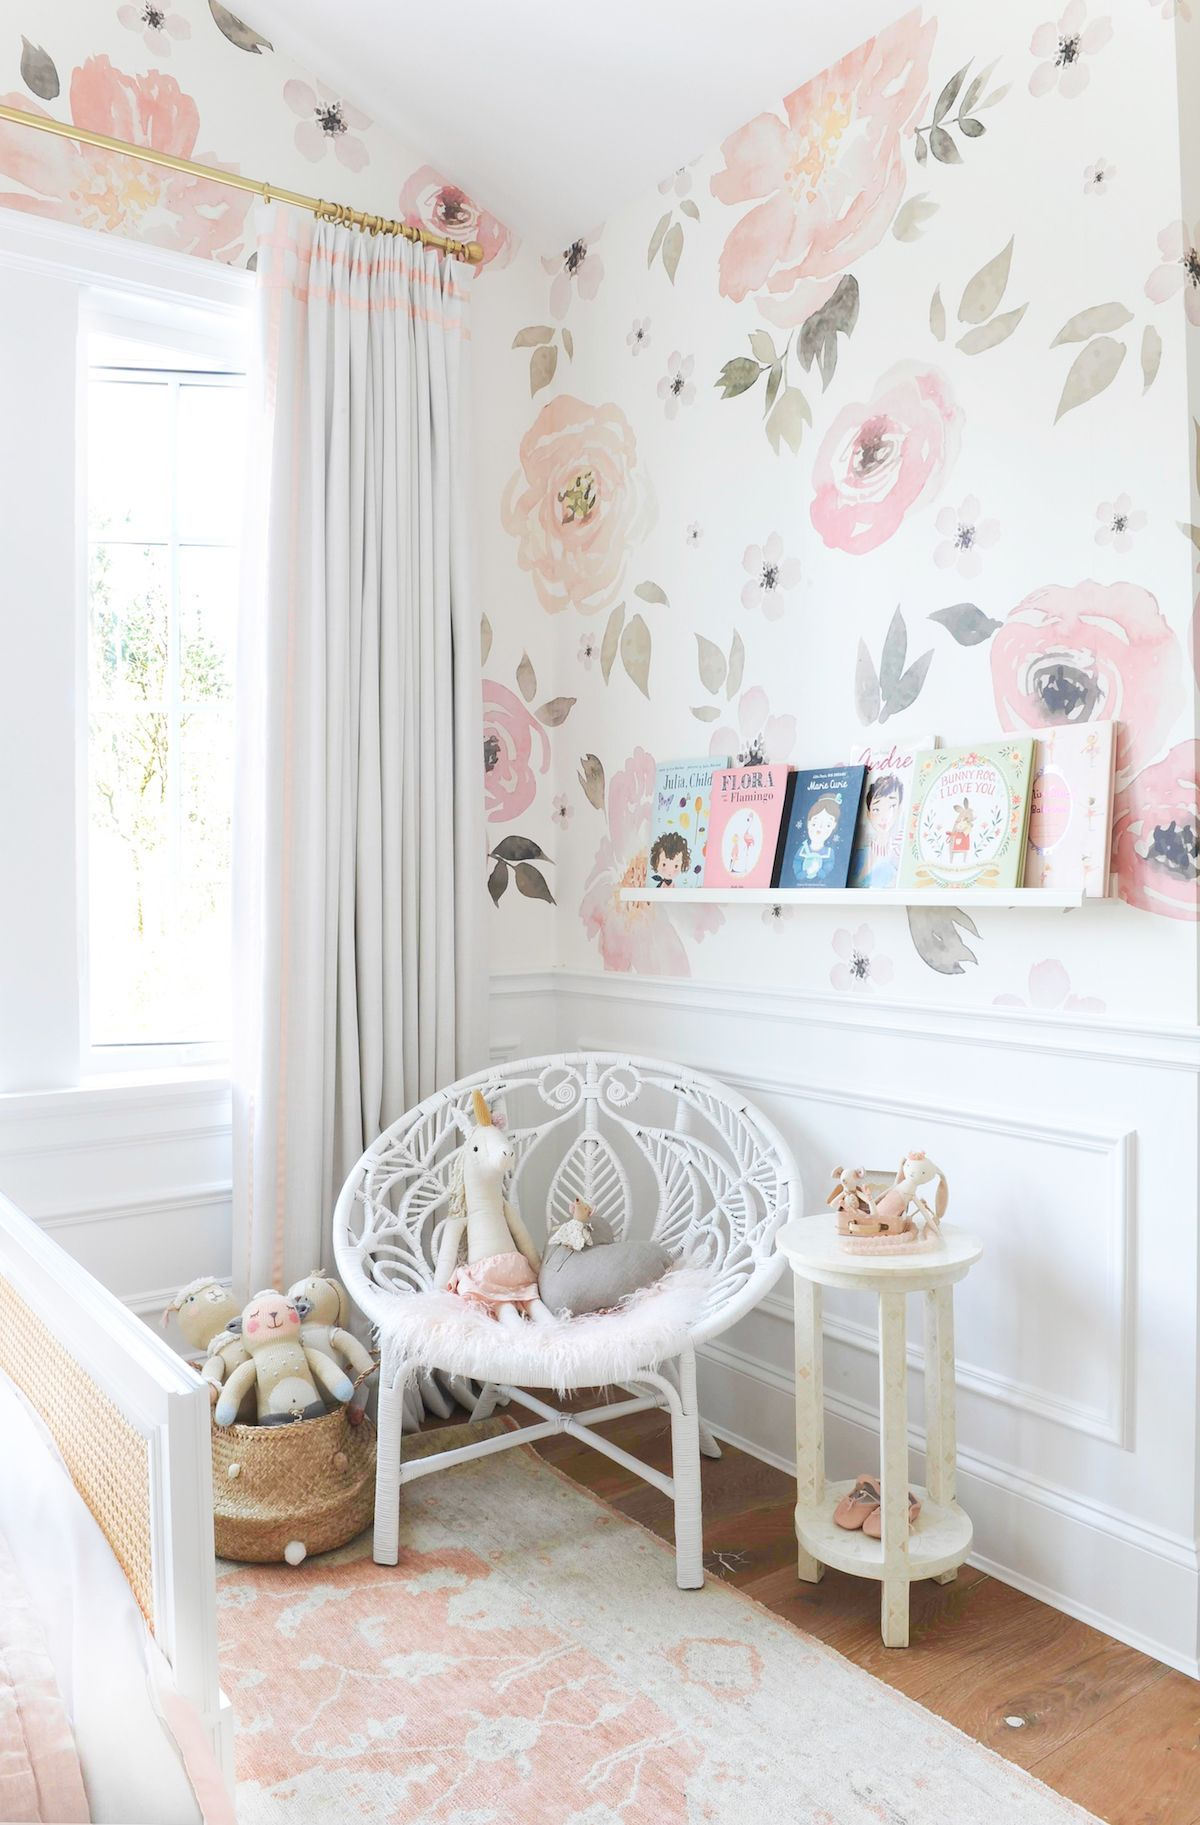 14 Girls Room Decor Ideas - Fun and Cute Style images